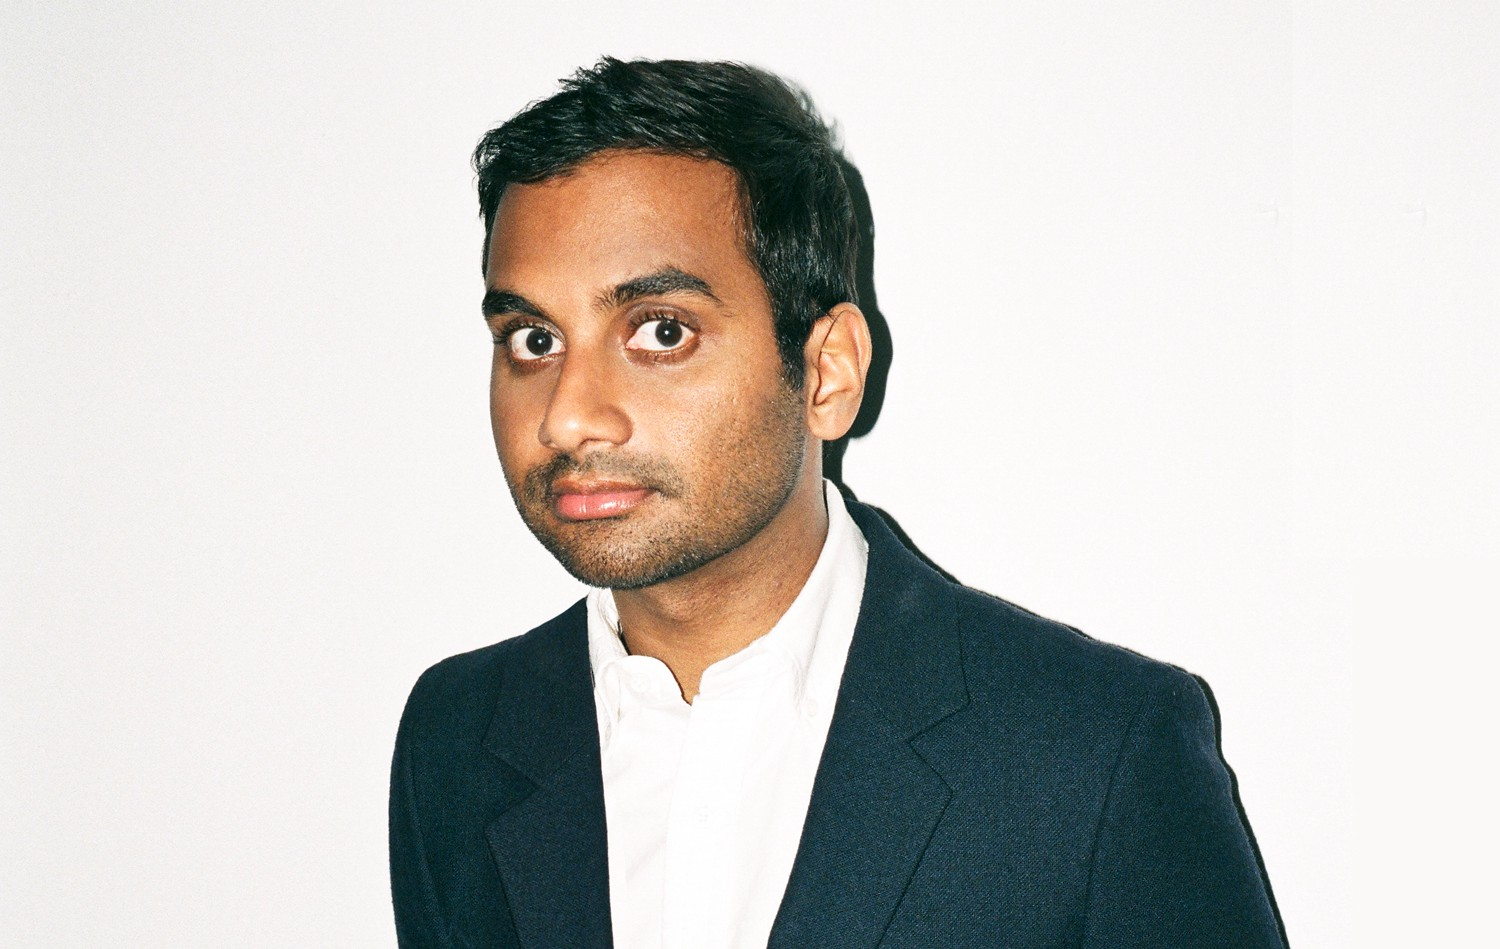 New Podcast Ep 11 - What to do About Social Media Bias, Aziz Ansari Scandal, Handmaid's Tail and More!